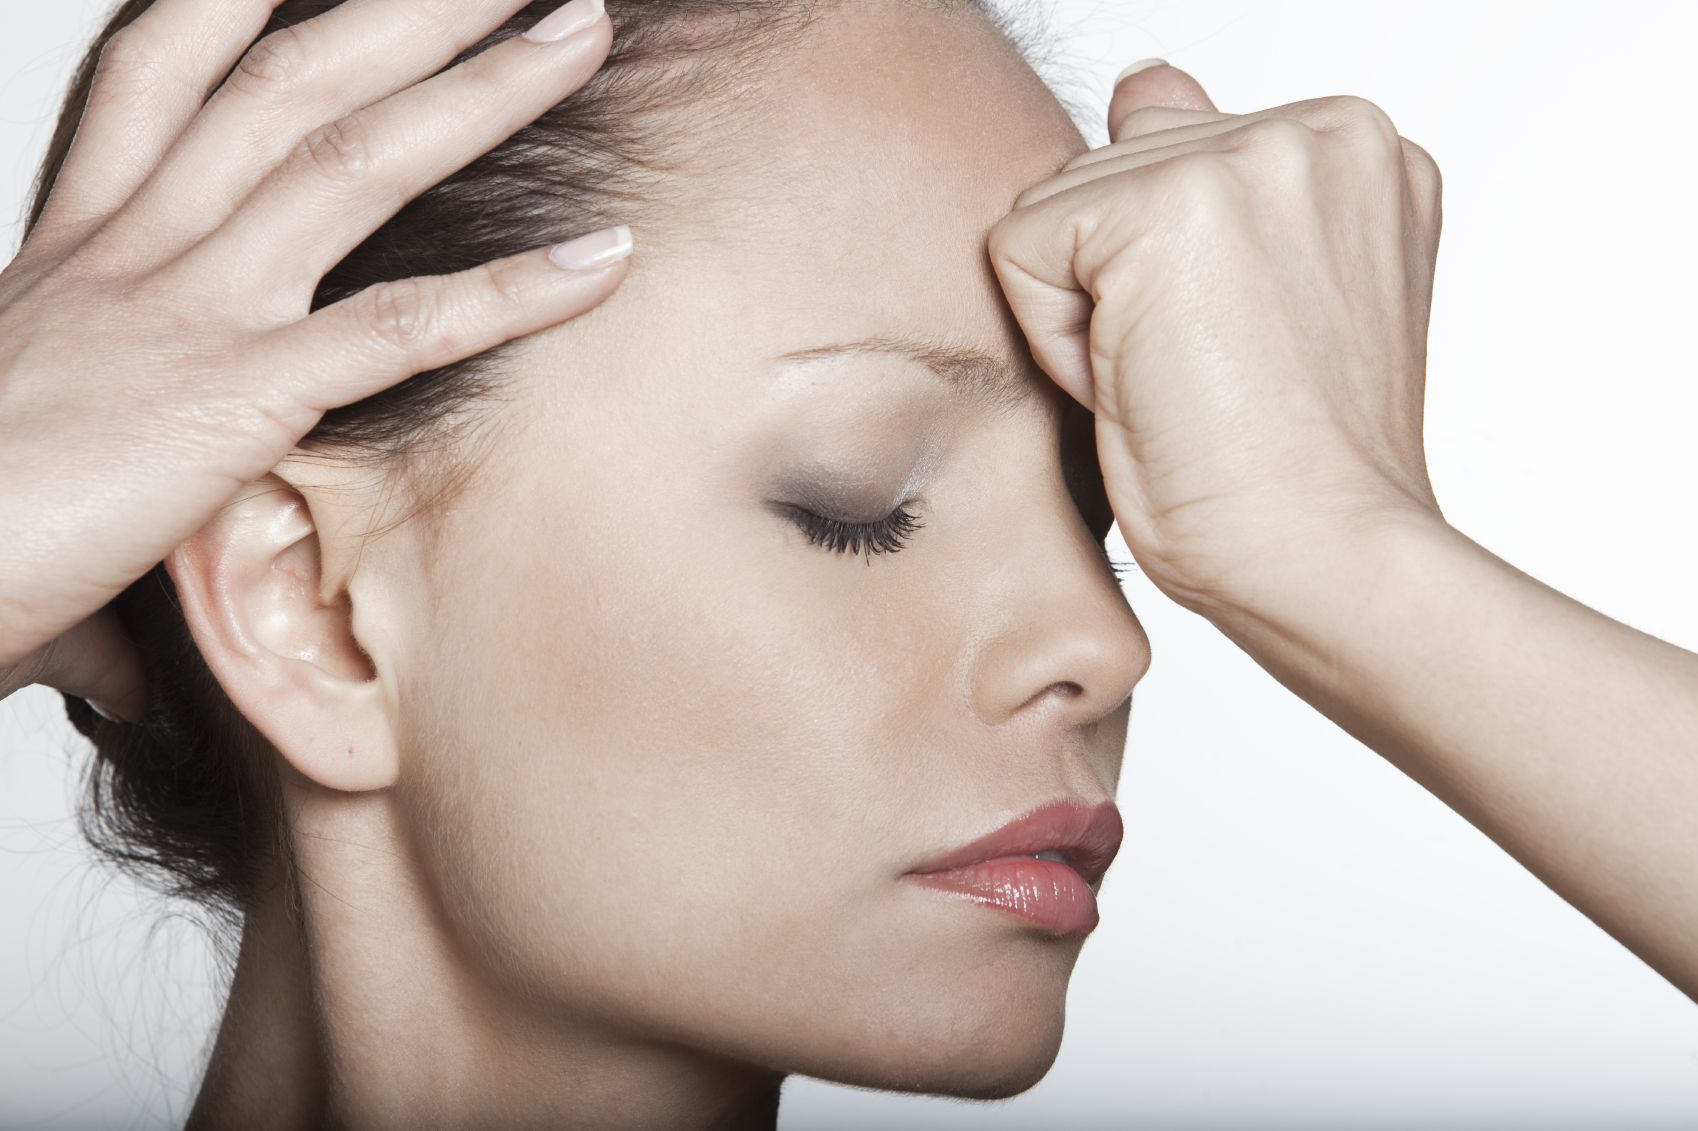 Say goodbye to chronic migraine pain